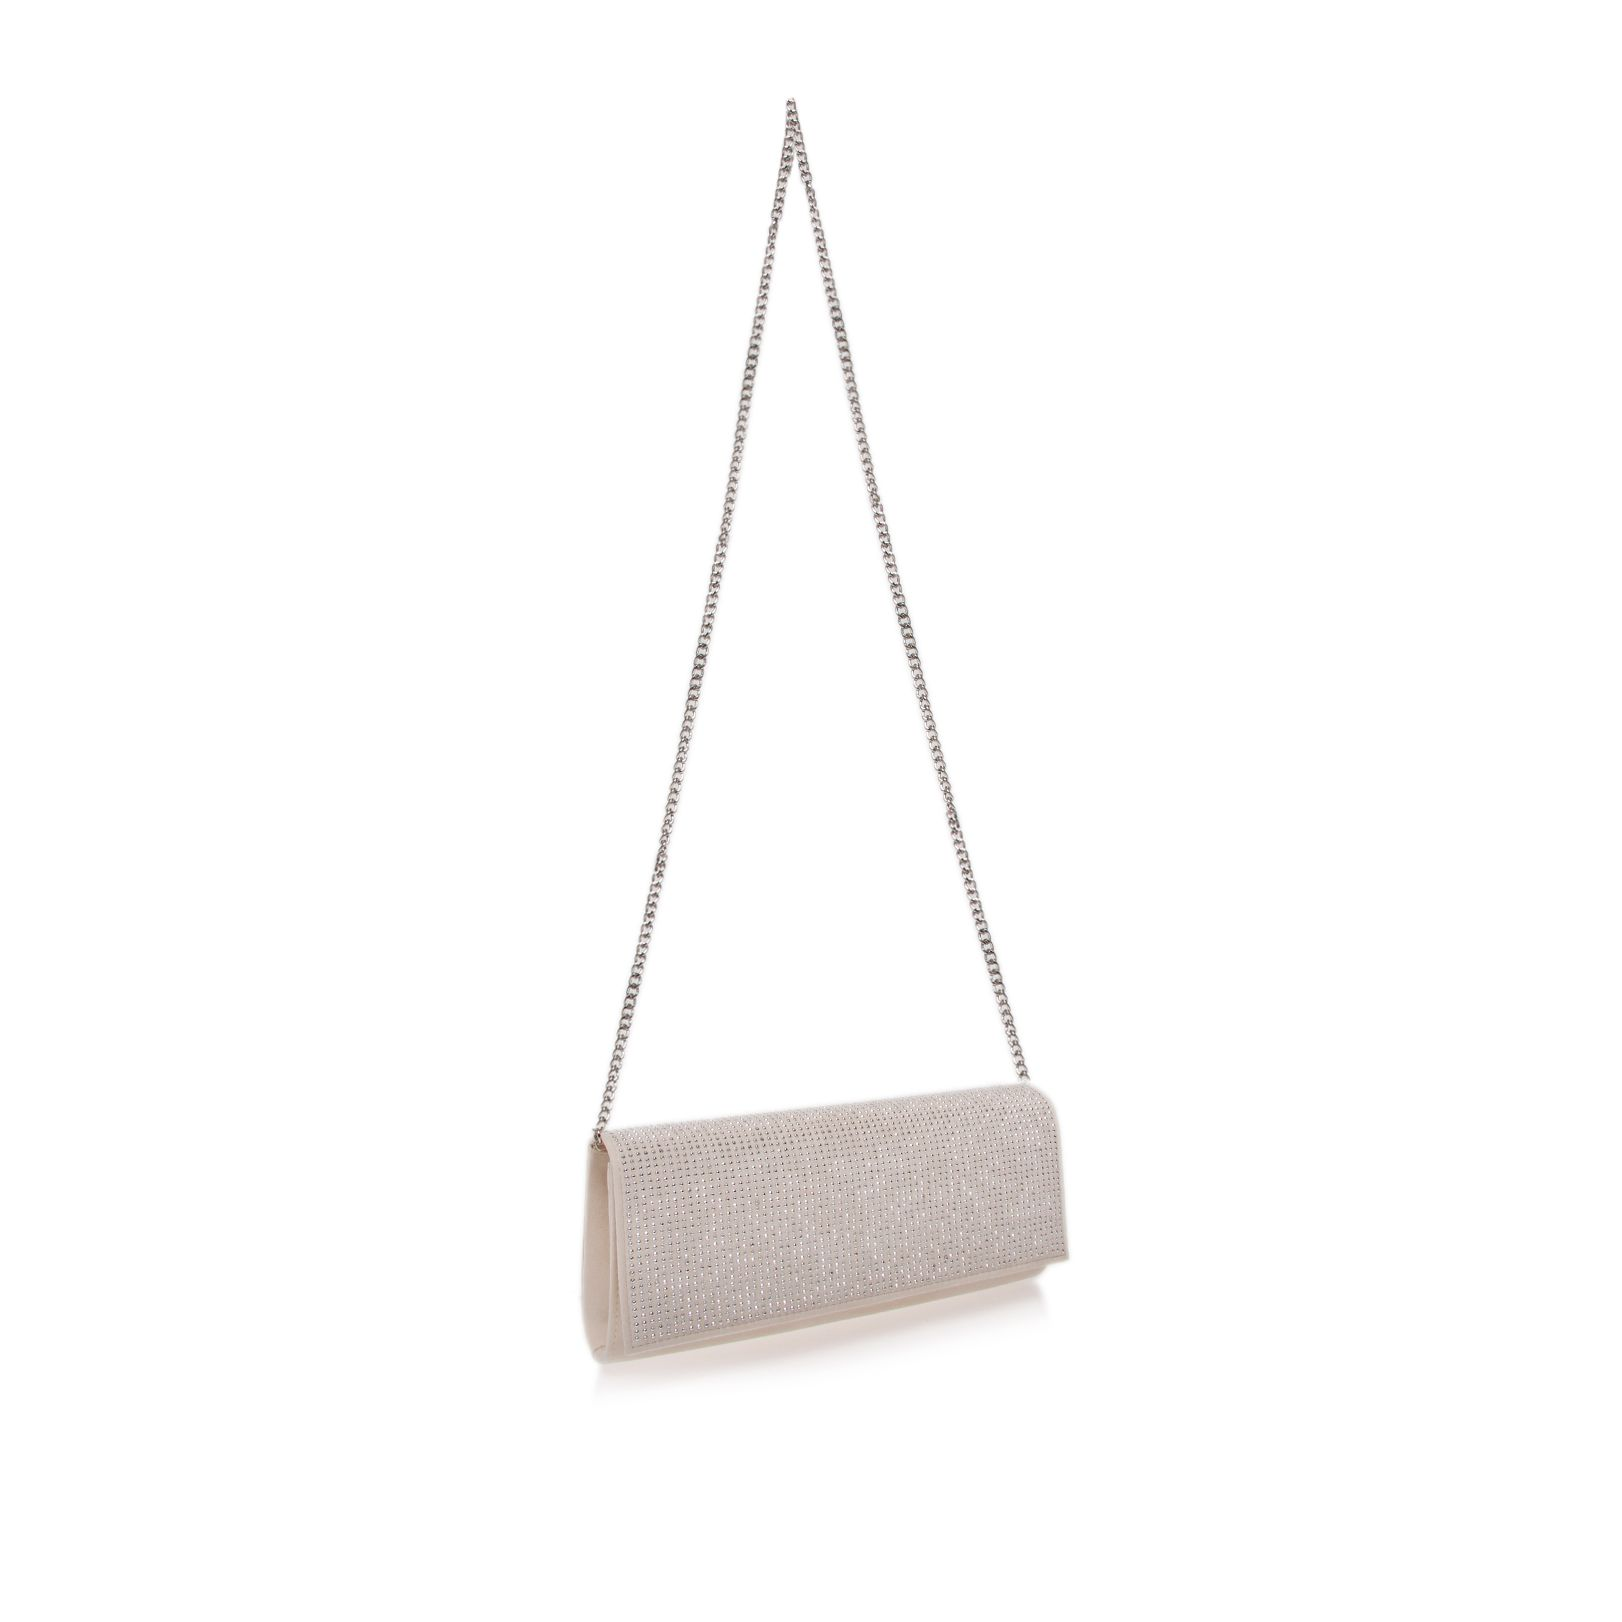 Tatiana nude clutch bag